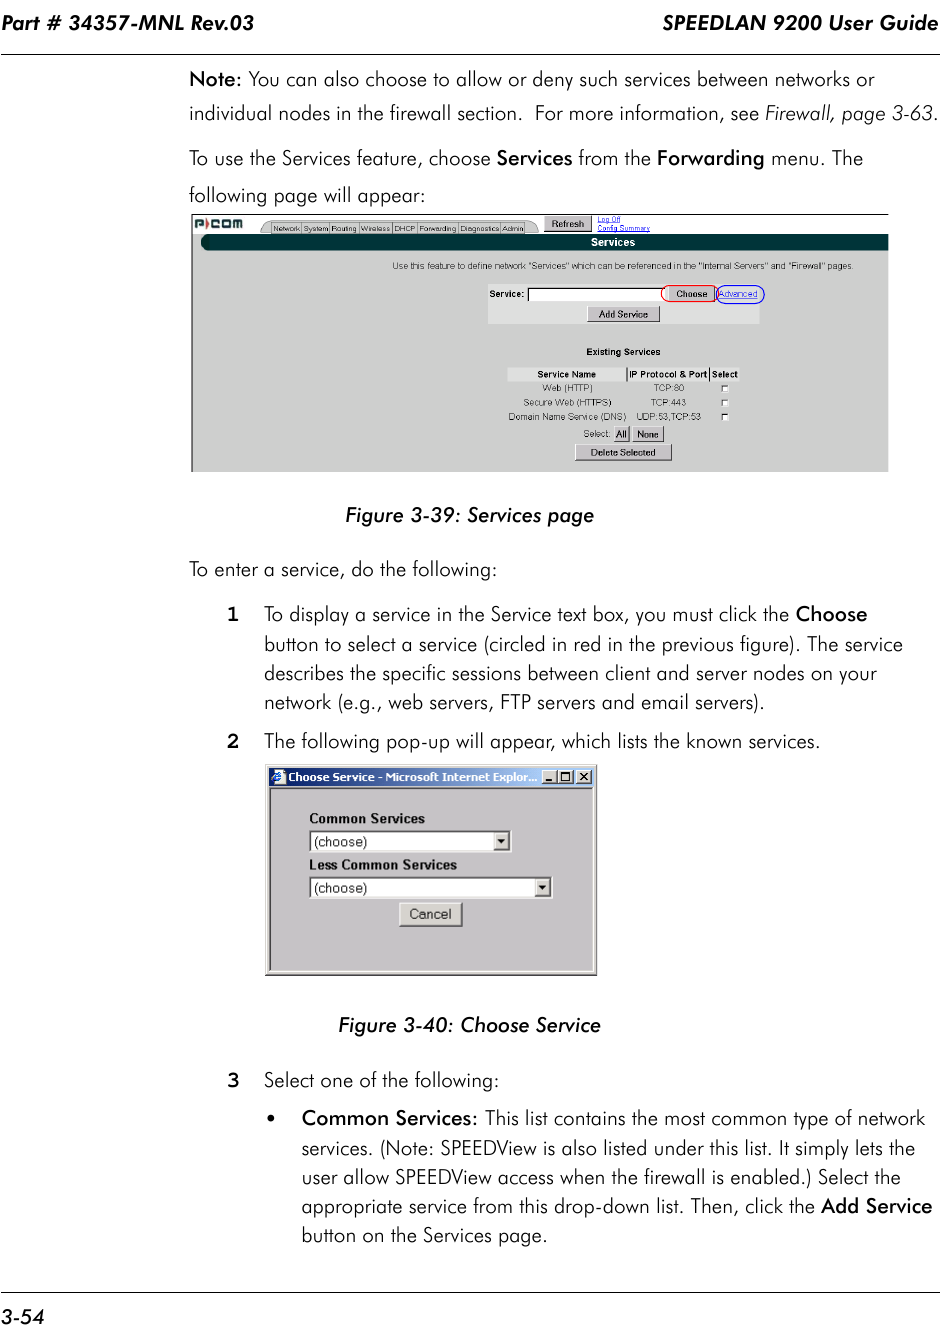 Part # 34357-MNL Rev.03                                                                   SPEEDLAN 9200 User Guide 3-54Note: You can also choose to allow or deny such services between networks or individual nodes in the firewall section.  For more information, see Firewall, page 3-63.To use the Services feature, choose Services from the Forwarding menu. The following page will appear:Figure 3-39: Services pageTo enter a service, do the following:1To display a service in the Service text box, you must click the Choose button to select a service (circled in red in the previous figure). The service describes the specific sessions between client and server nodes on yournetwork (e.g., web servers, FTP servers and email servers).2The following pop-up will appear, which lists the known services. Figure 3-40: Choose Service3Select one of the following:•Common Services: This list contains the most common type of network services. (Note: SPEEDView is also listed under this list. It simply lets the user allow SPEEDView access when the firewall is enabled.) Select the appropriate service from this drop-down list. Then, click the Add Service button on the Services page.